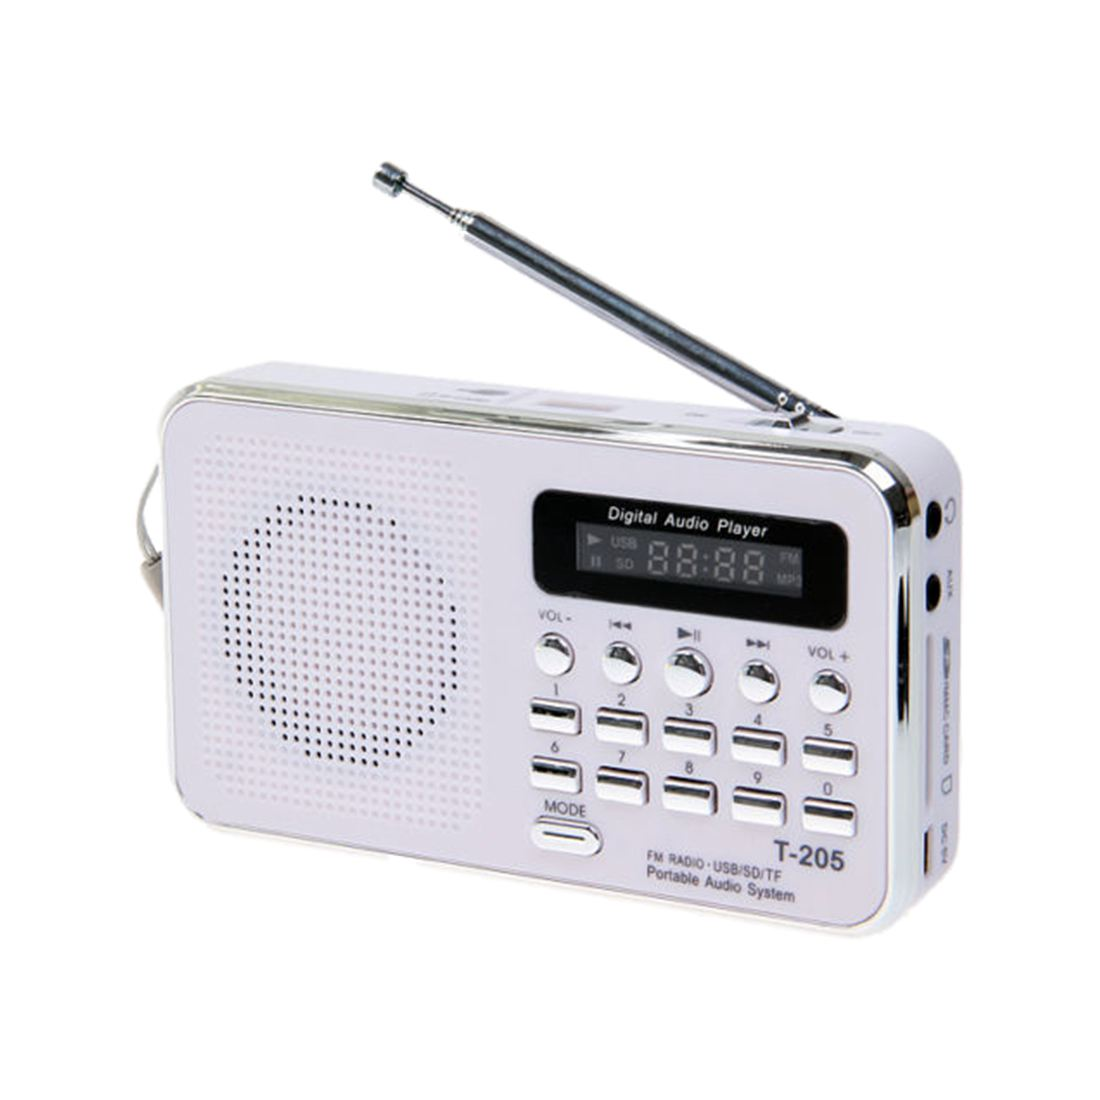 Portable Stereo Mini Speaker Digital FM Radio for Mobile Phone Tablet Laptop PC